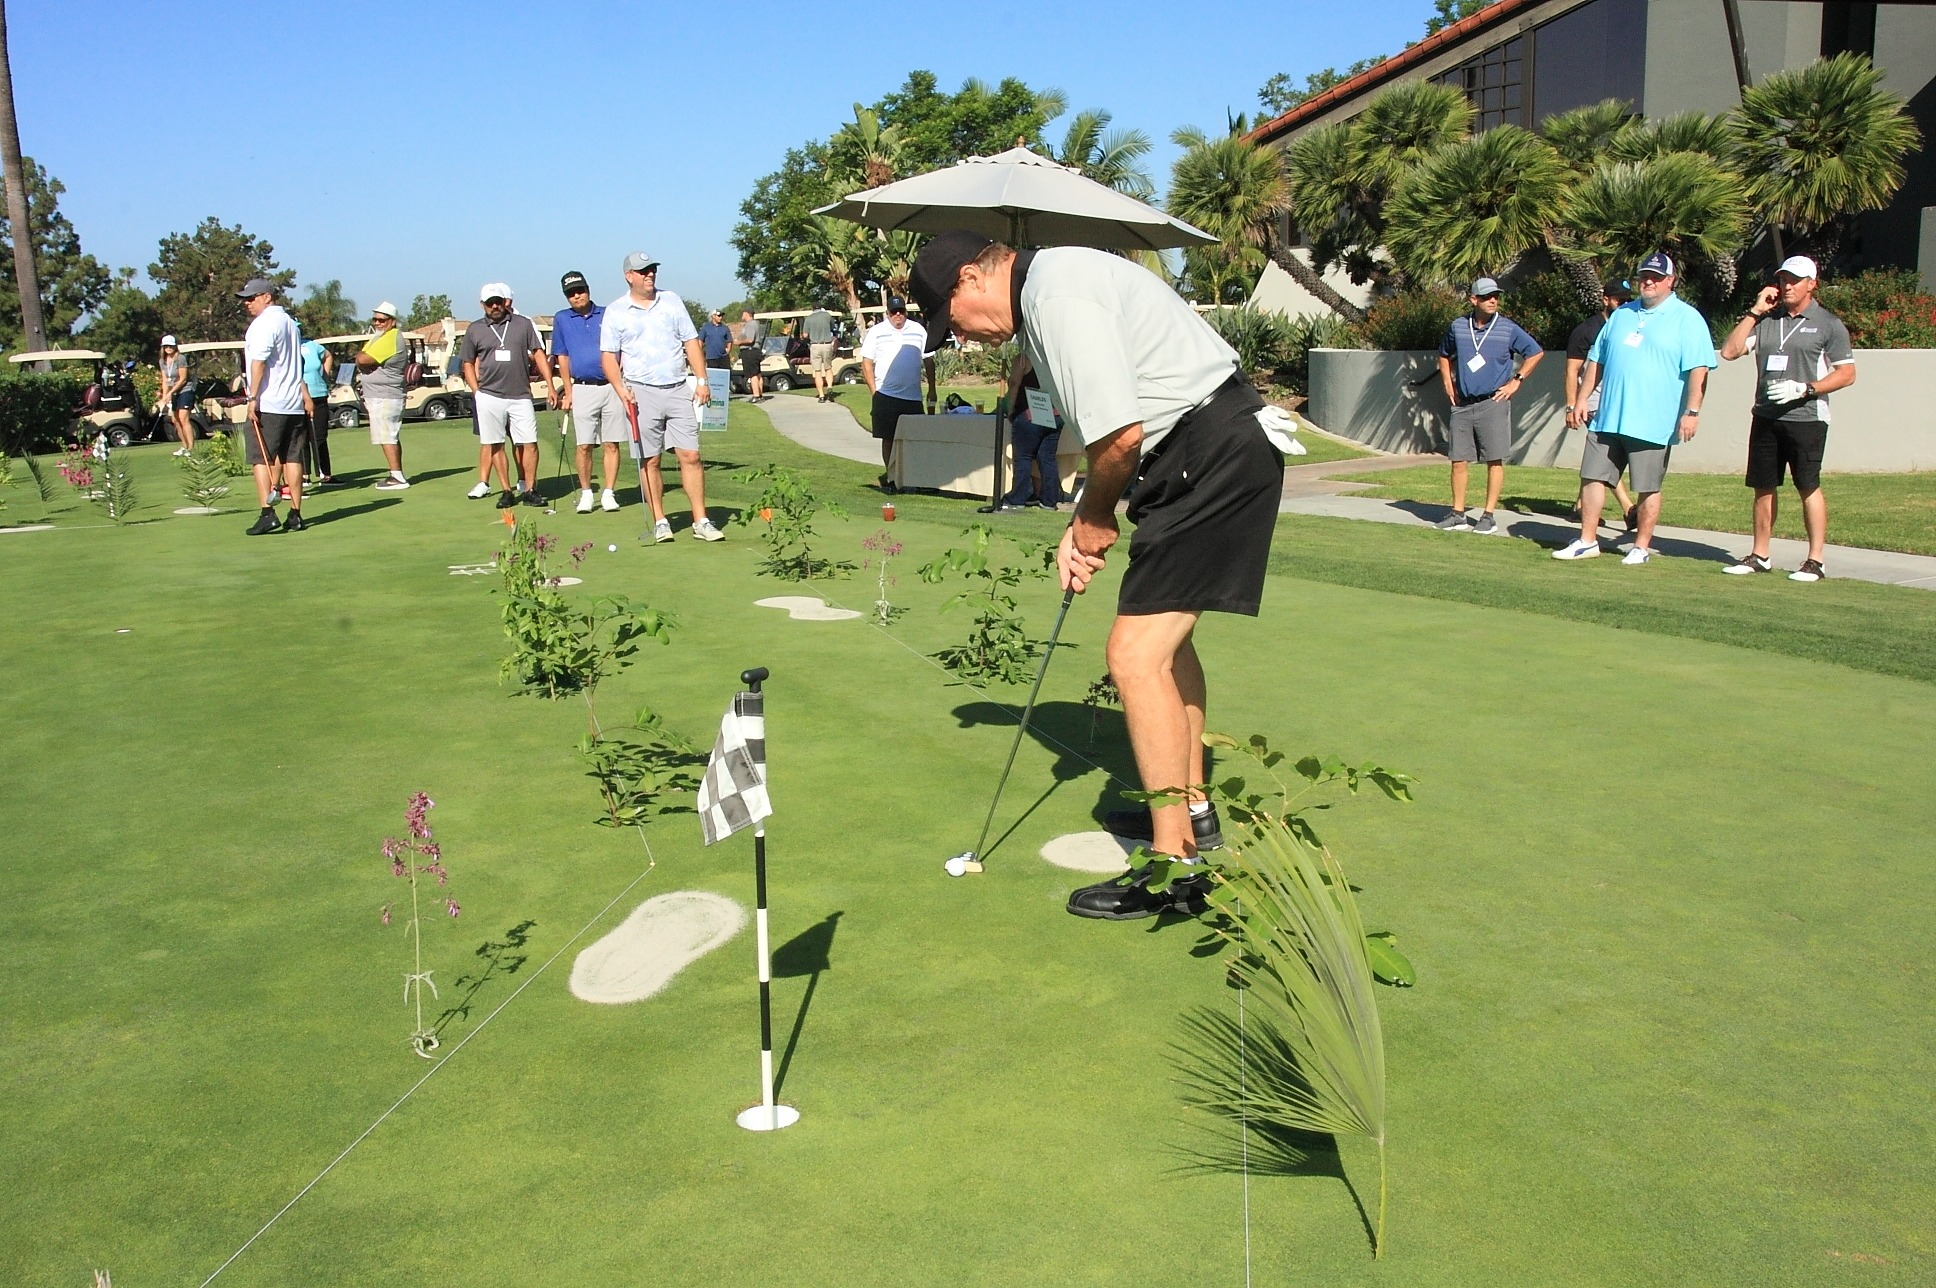 Charles Alter with Sunview Marketing, competing in the pre-tournament putting contest.